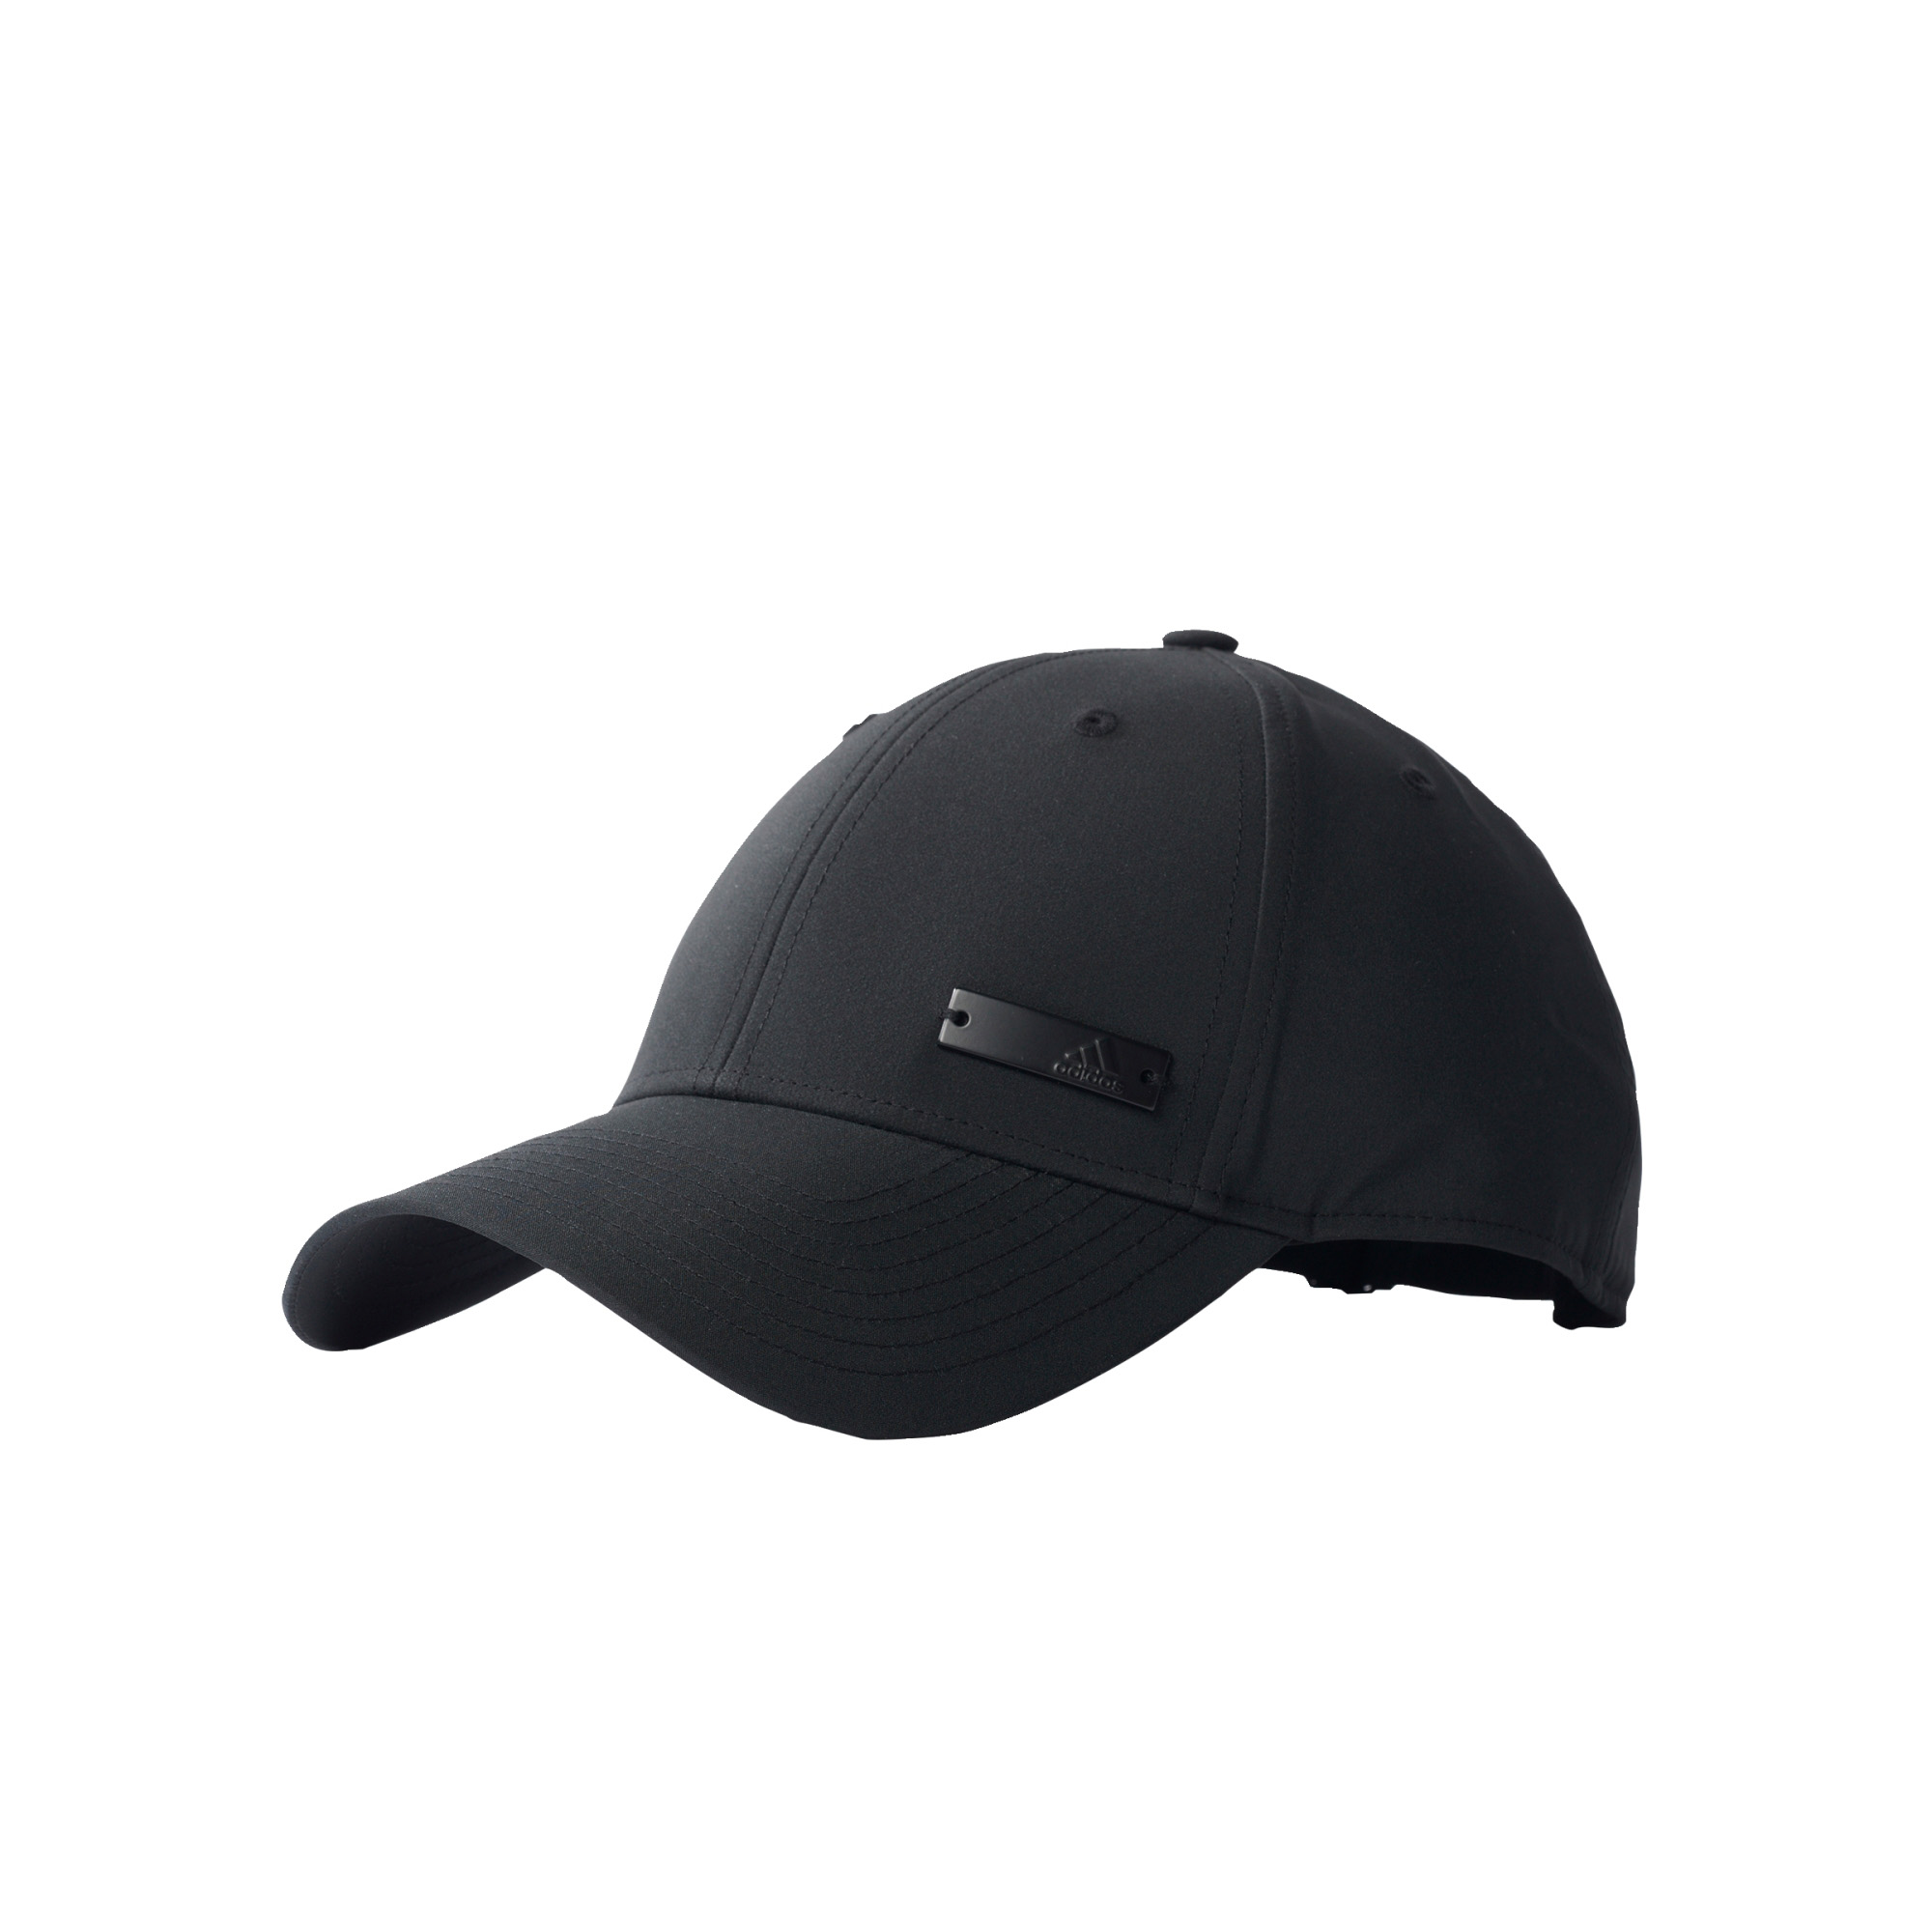 Details about adidas Metal Logo Mens Kids Lightweight Baseball Cap Hat  Black - Child 43e193cdabe